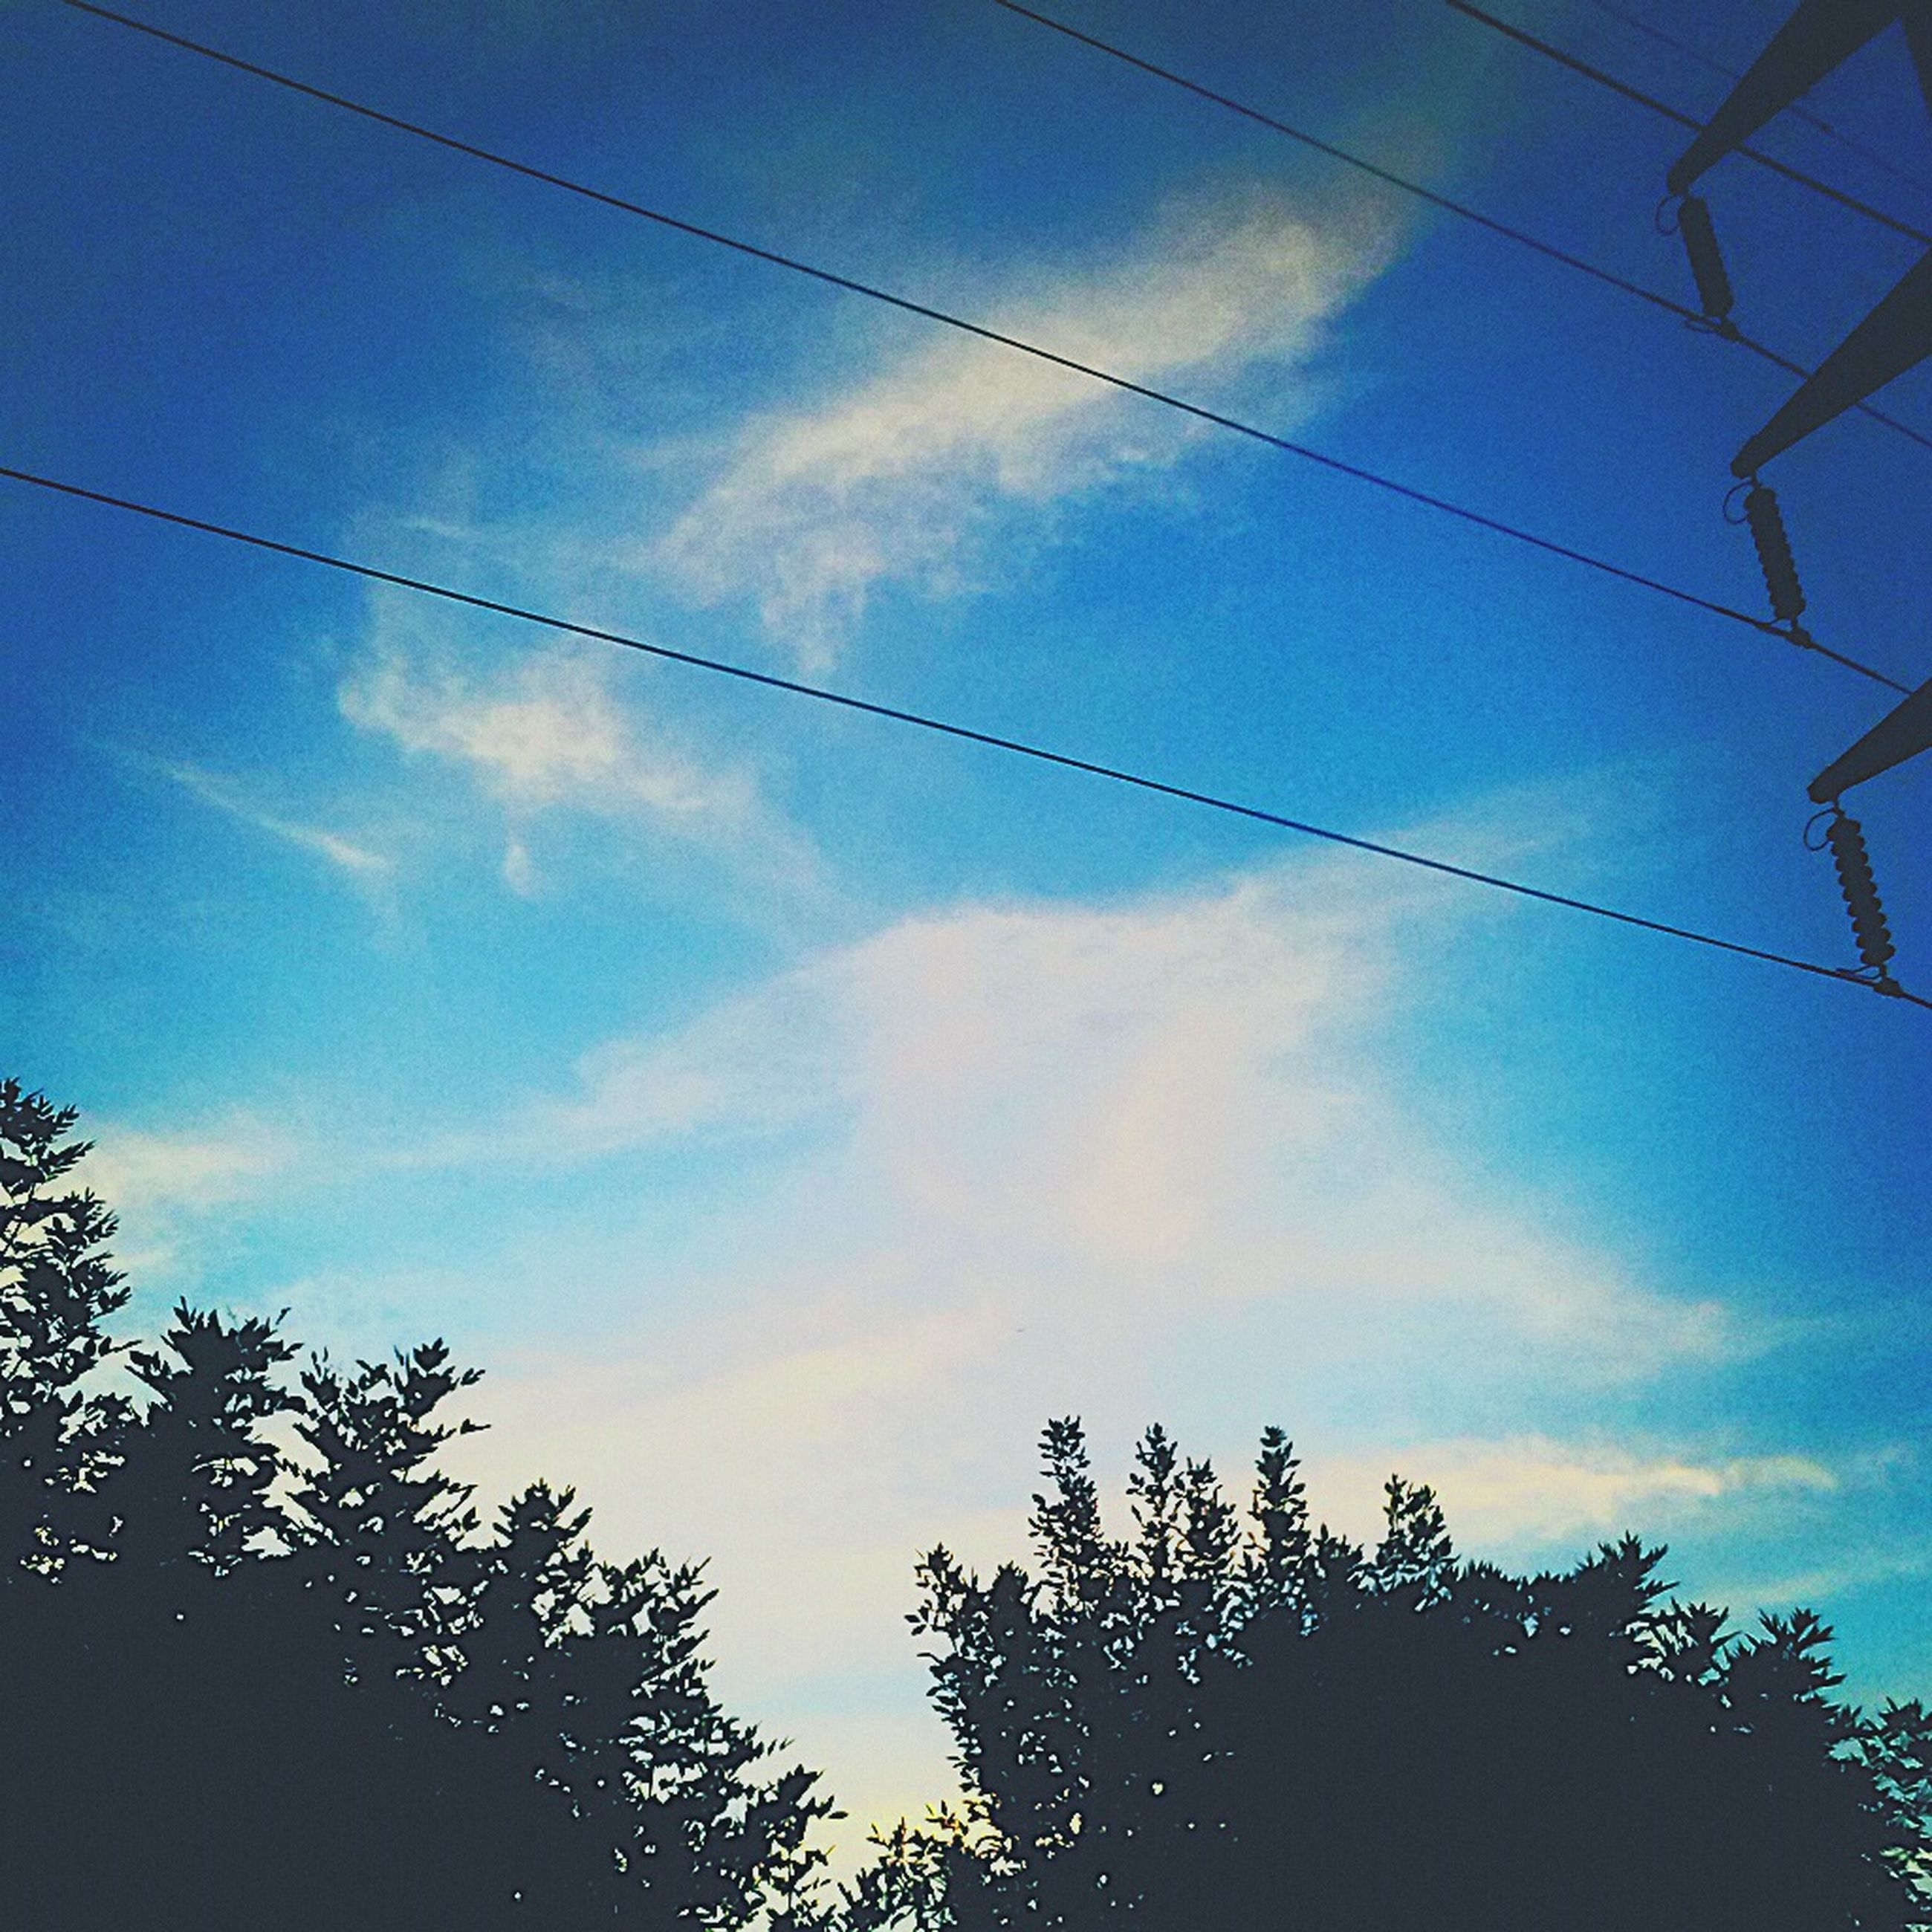 low angle view, power line, sky, tree, silhouette, blue, electricity, cable, cloud - sky, electricity pylon, power supply, tranquility, nature, beauty in nature, cloud, scenics, tranquil scene, vapor trail, connection, outdoors